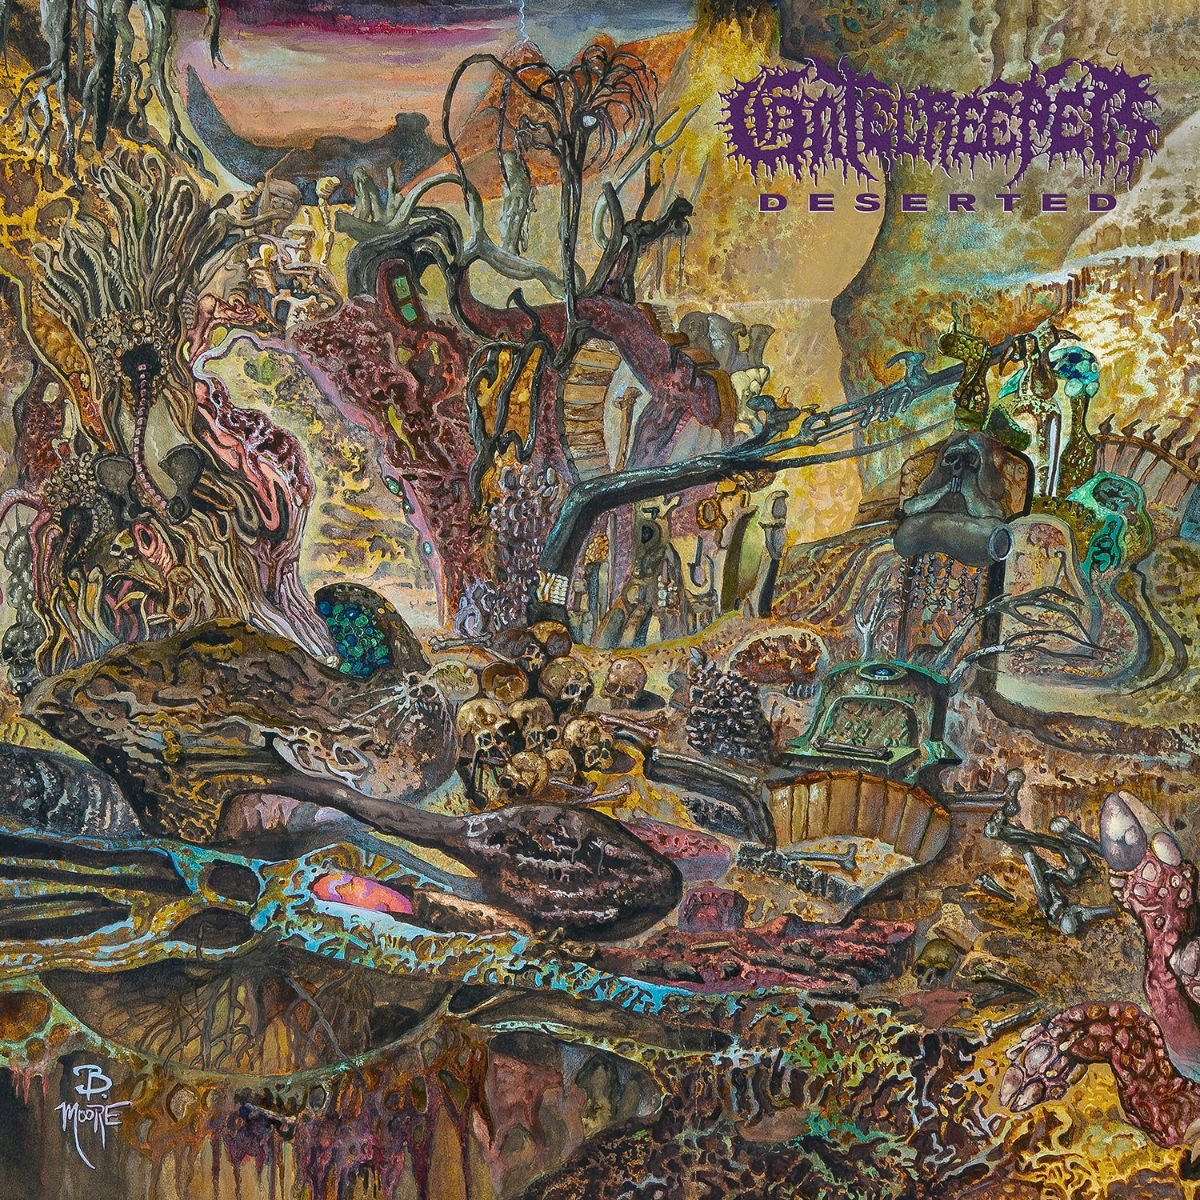 Wow. Look at that glorious @Gatecreeper artwork by Brad Moore. Out now via the legendary @RelapseRecords spoti.fi/356n7zz